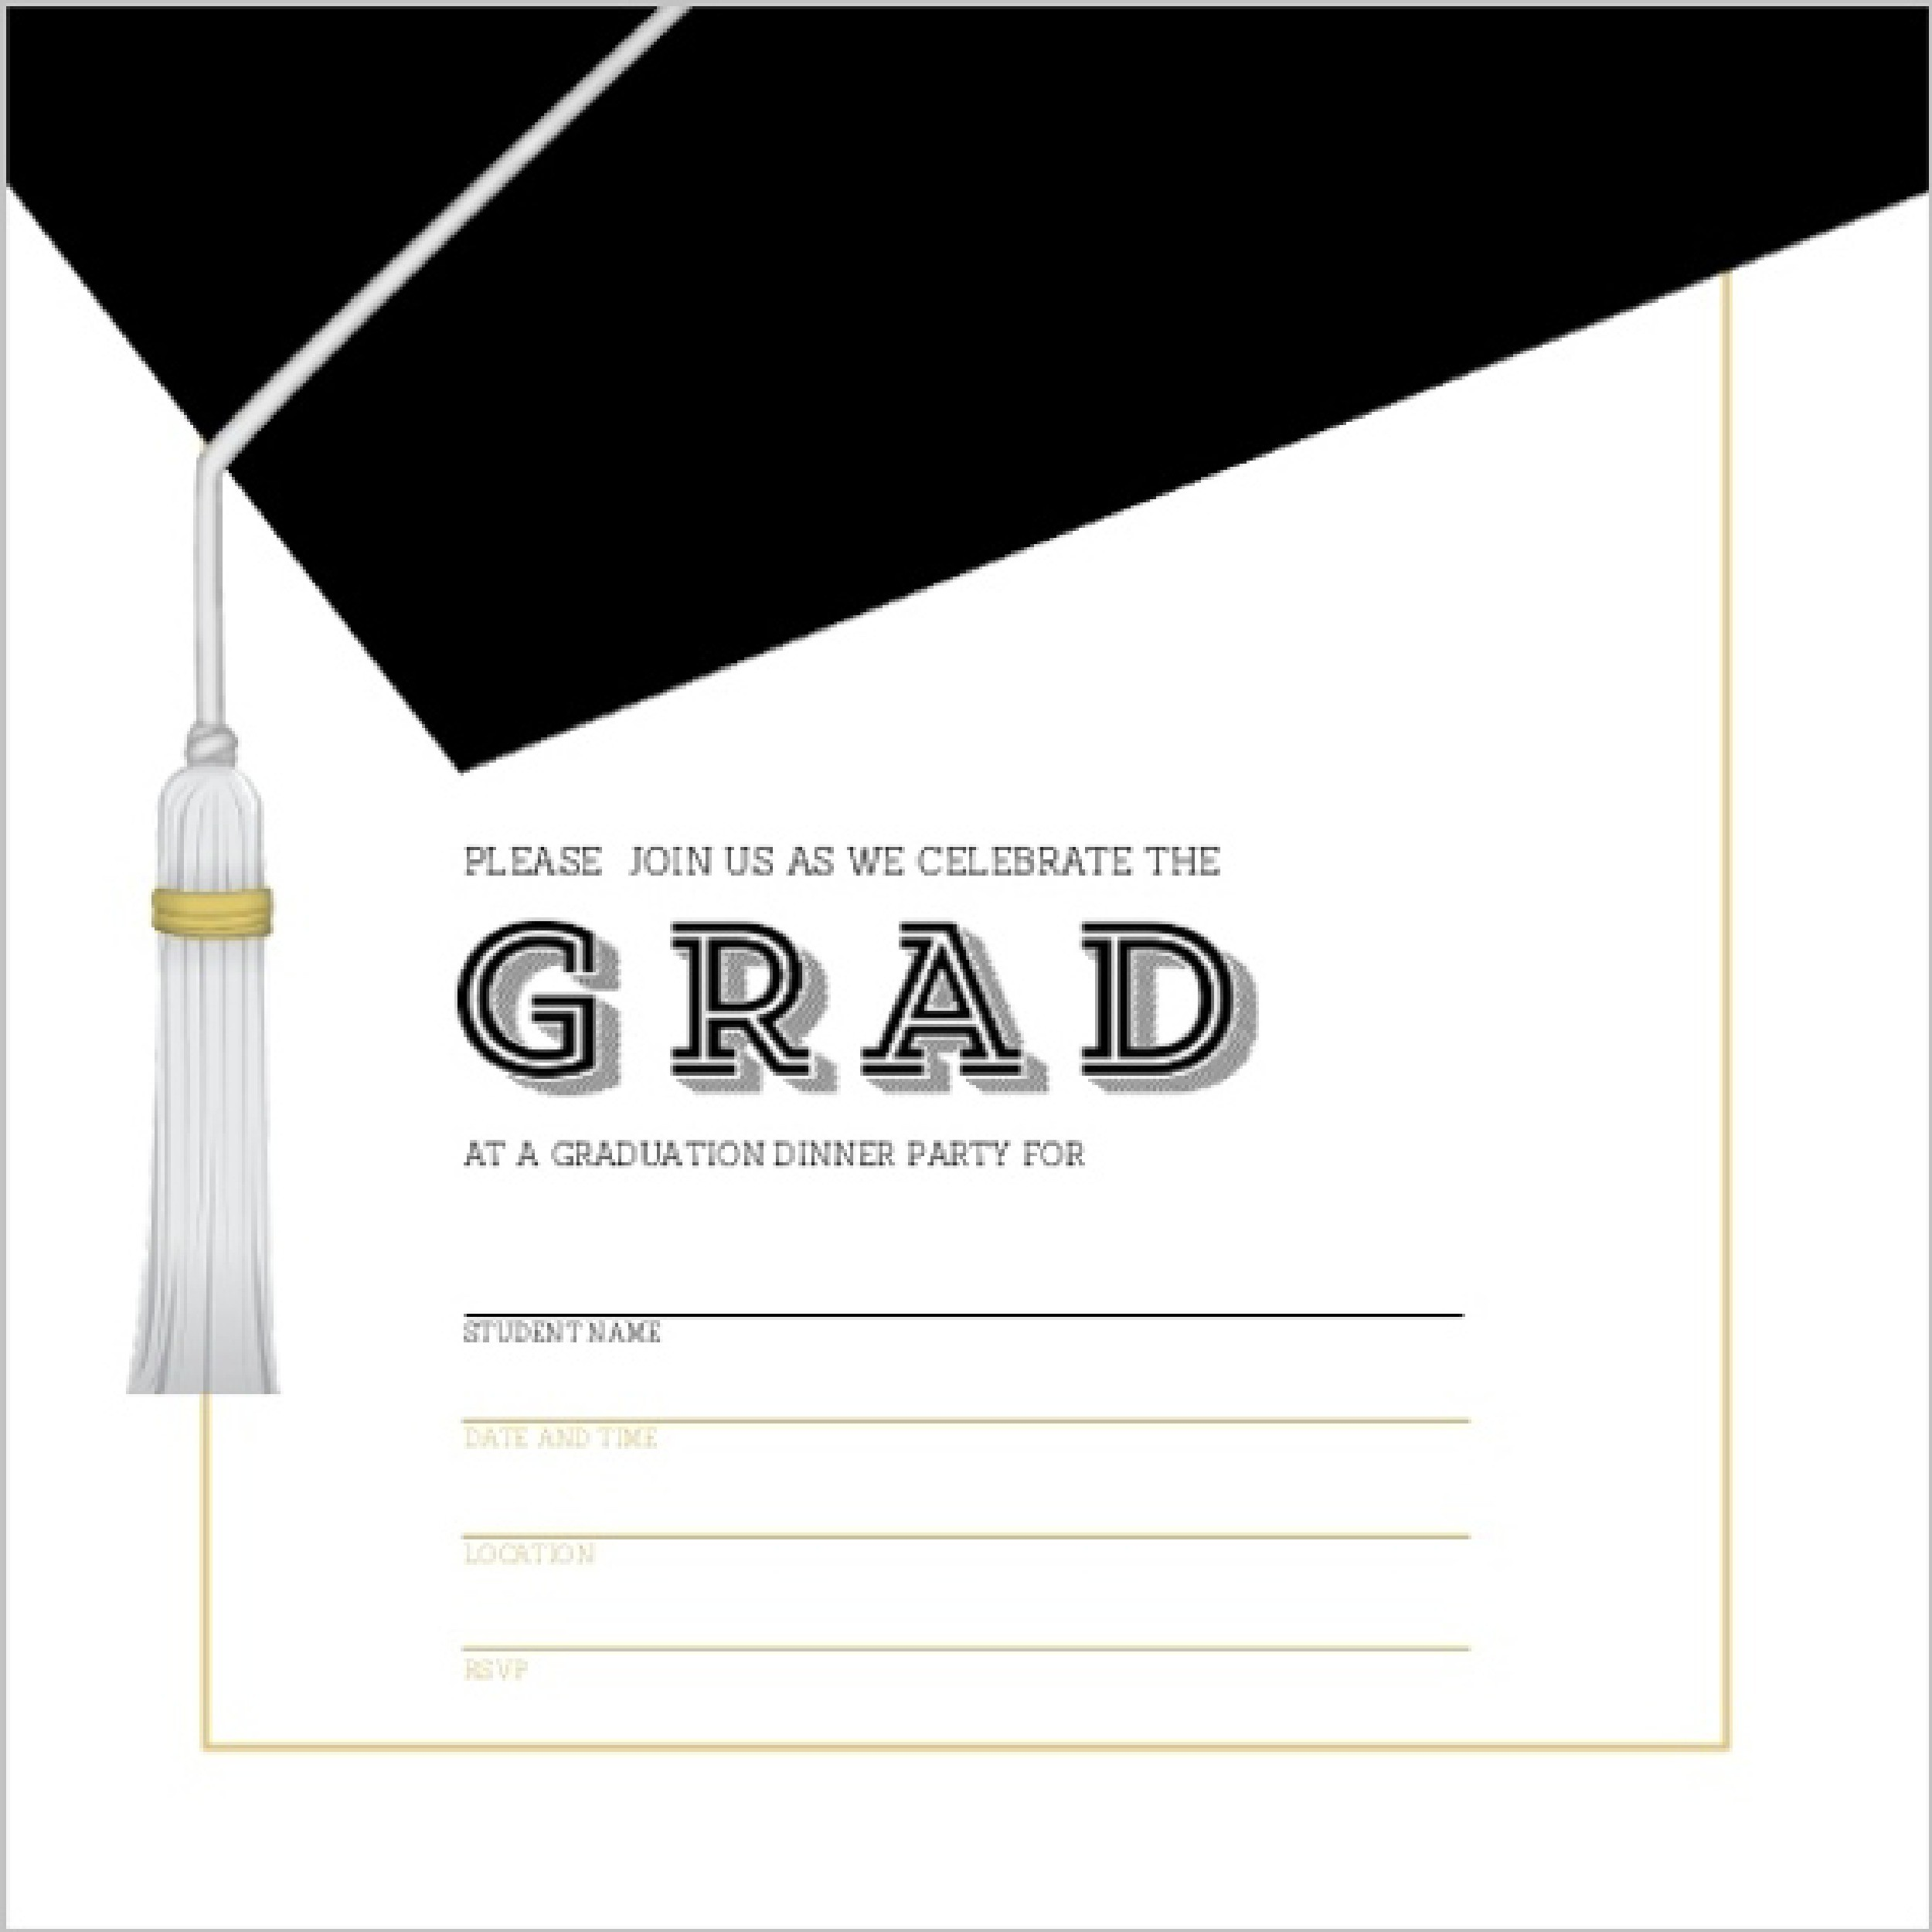 40 Free Graduation Invitation Templates ᐅ Template Lab